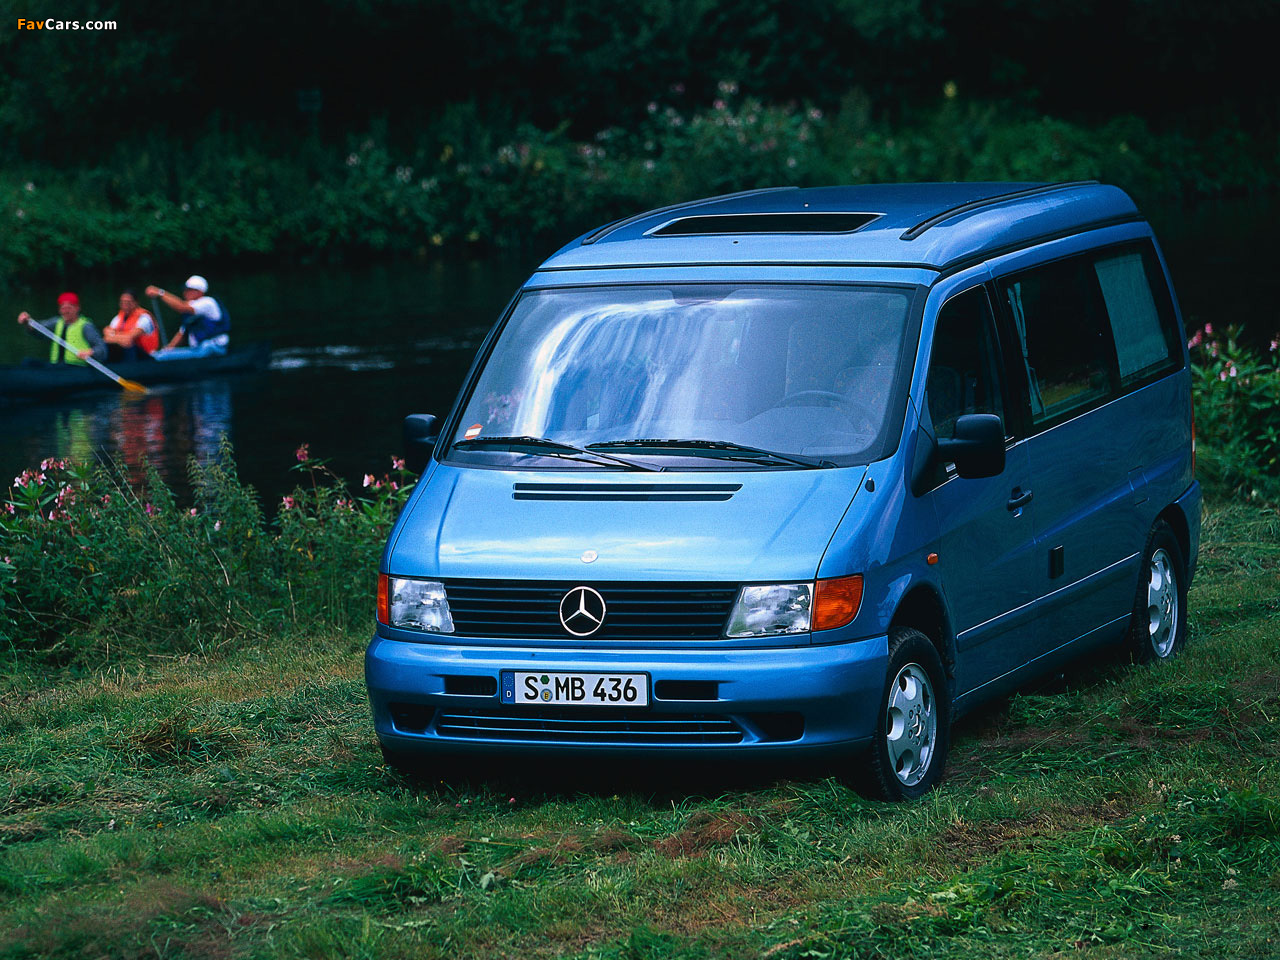 mercedes benz vito marco polo w638 1996 2003 pictures. Black Bedroom Furniture Sets. Home Design Ideas